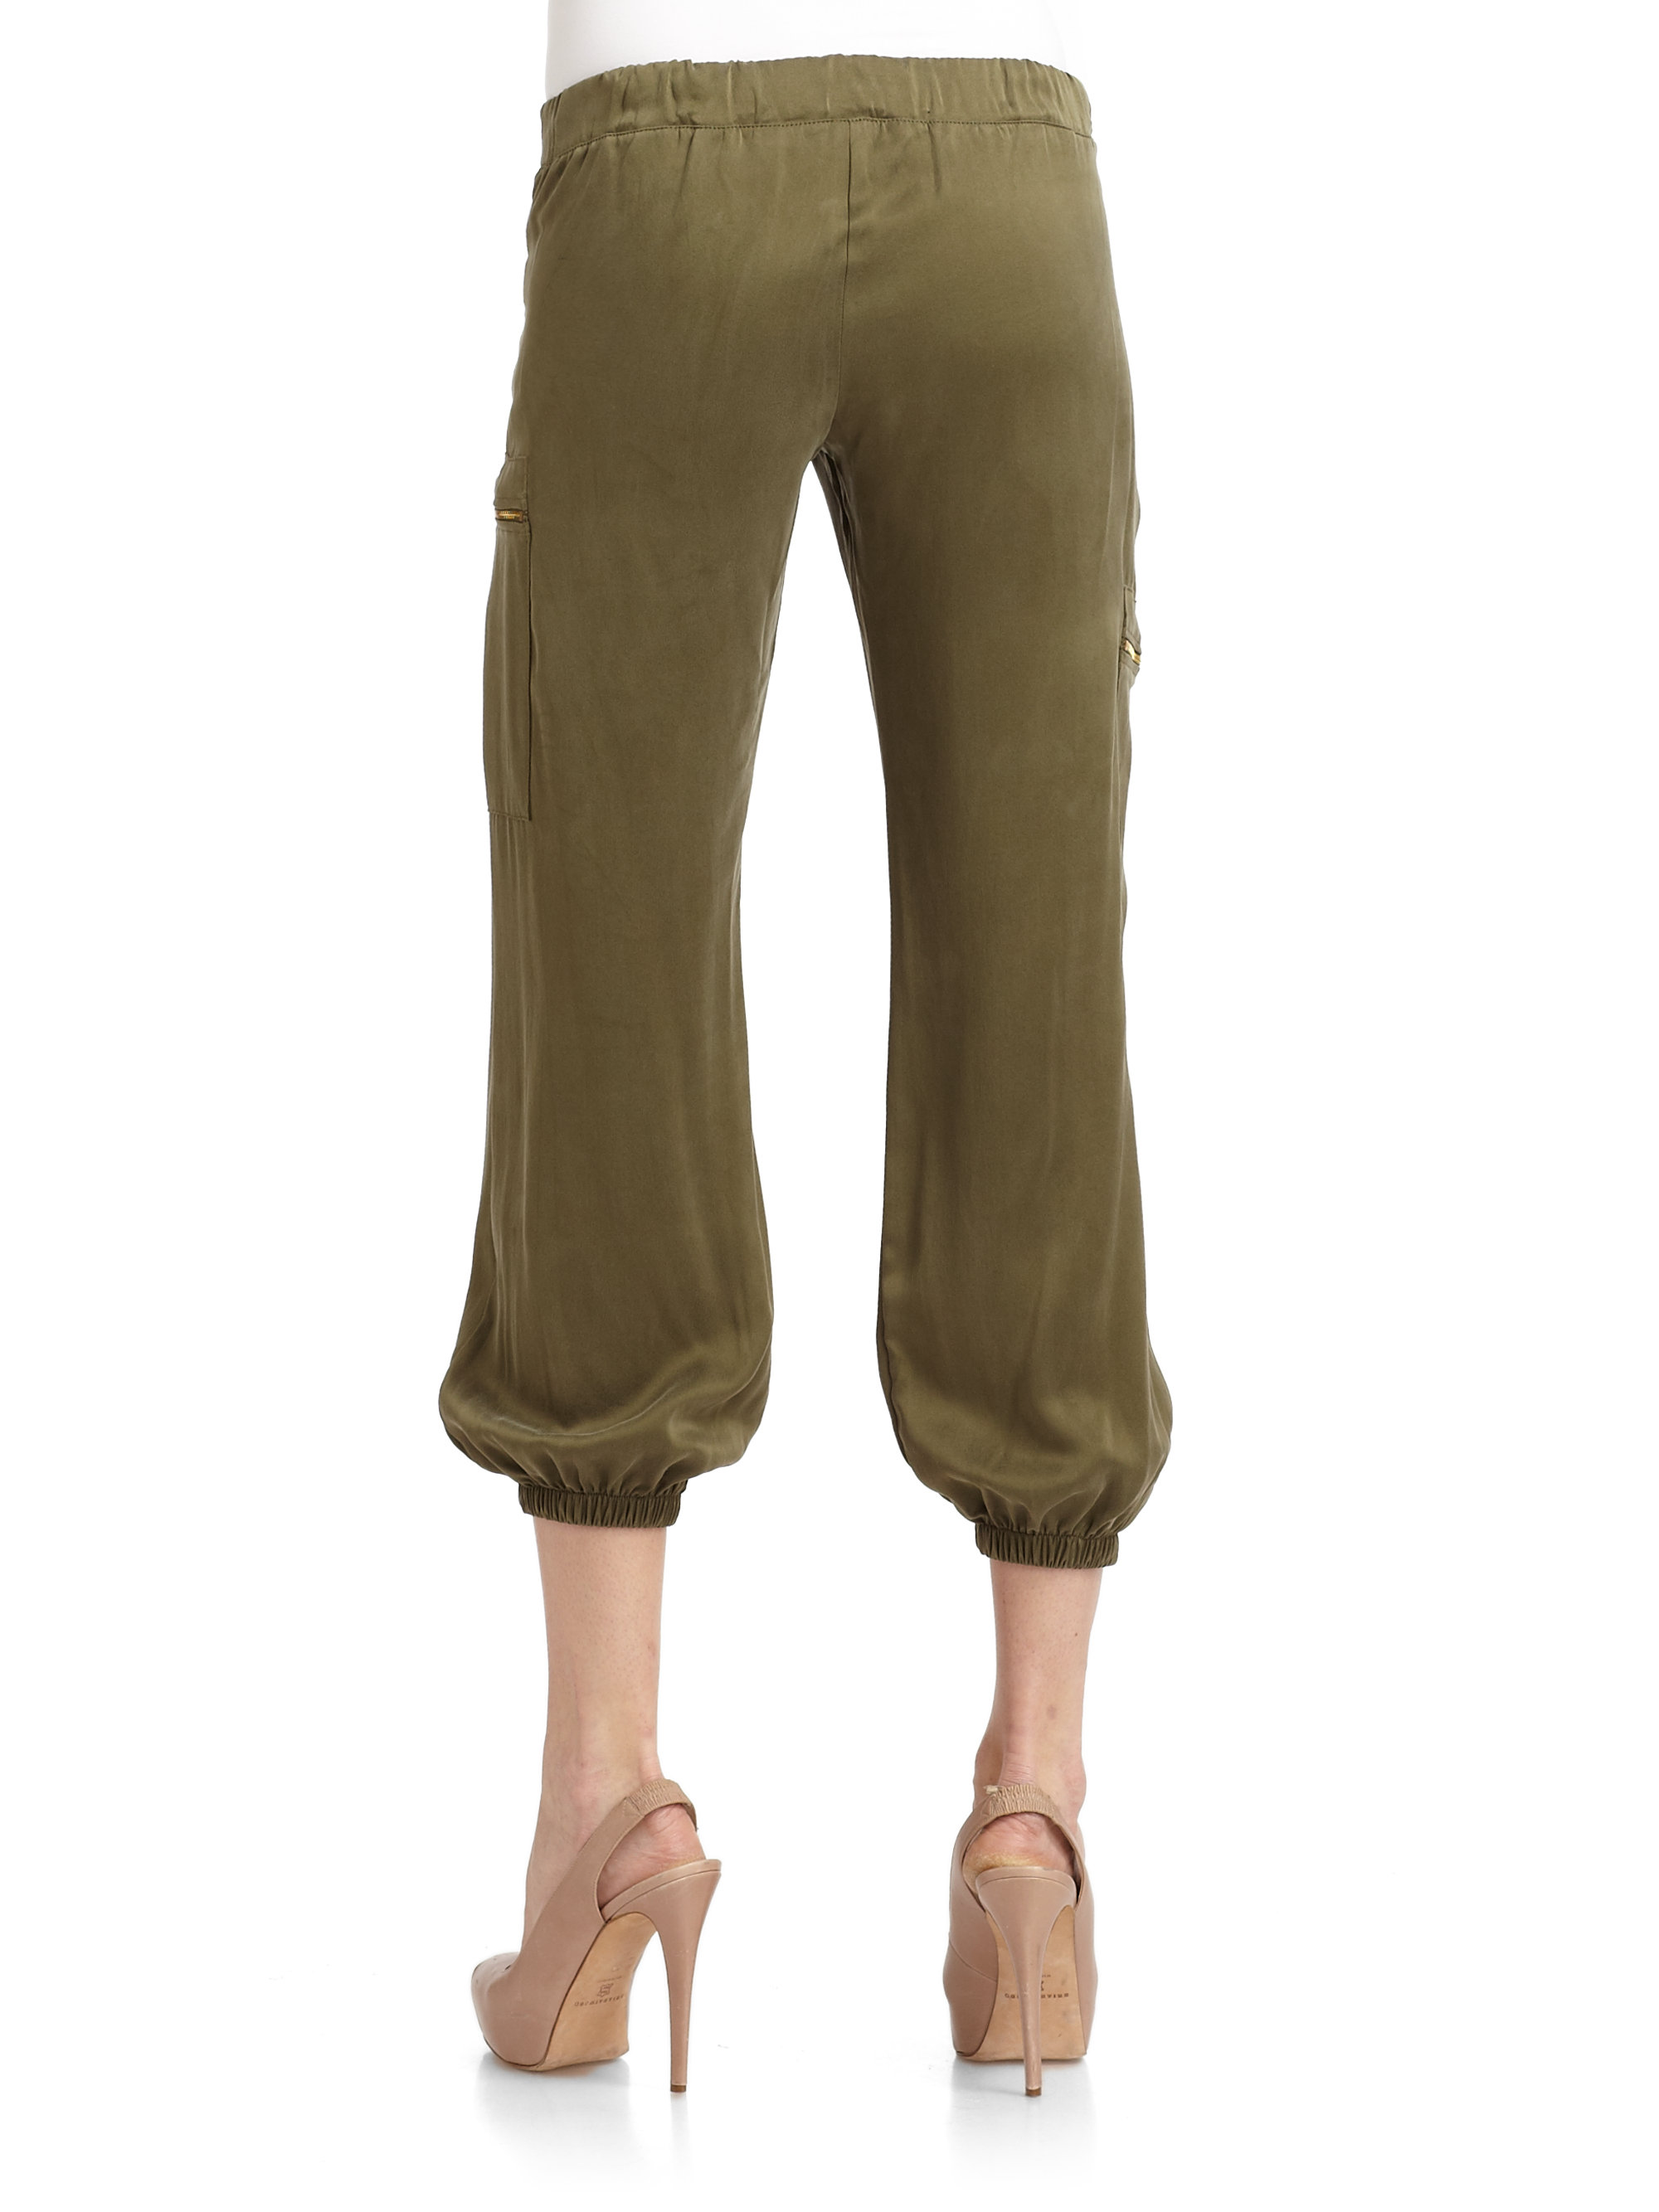 Maggie ward Sueded Silk Cargo Pants in Green | Lyst